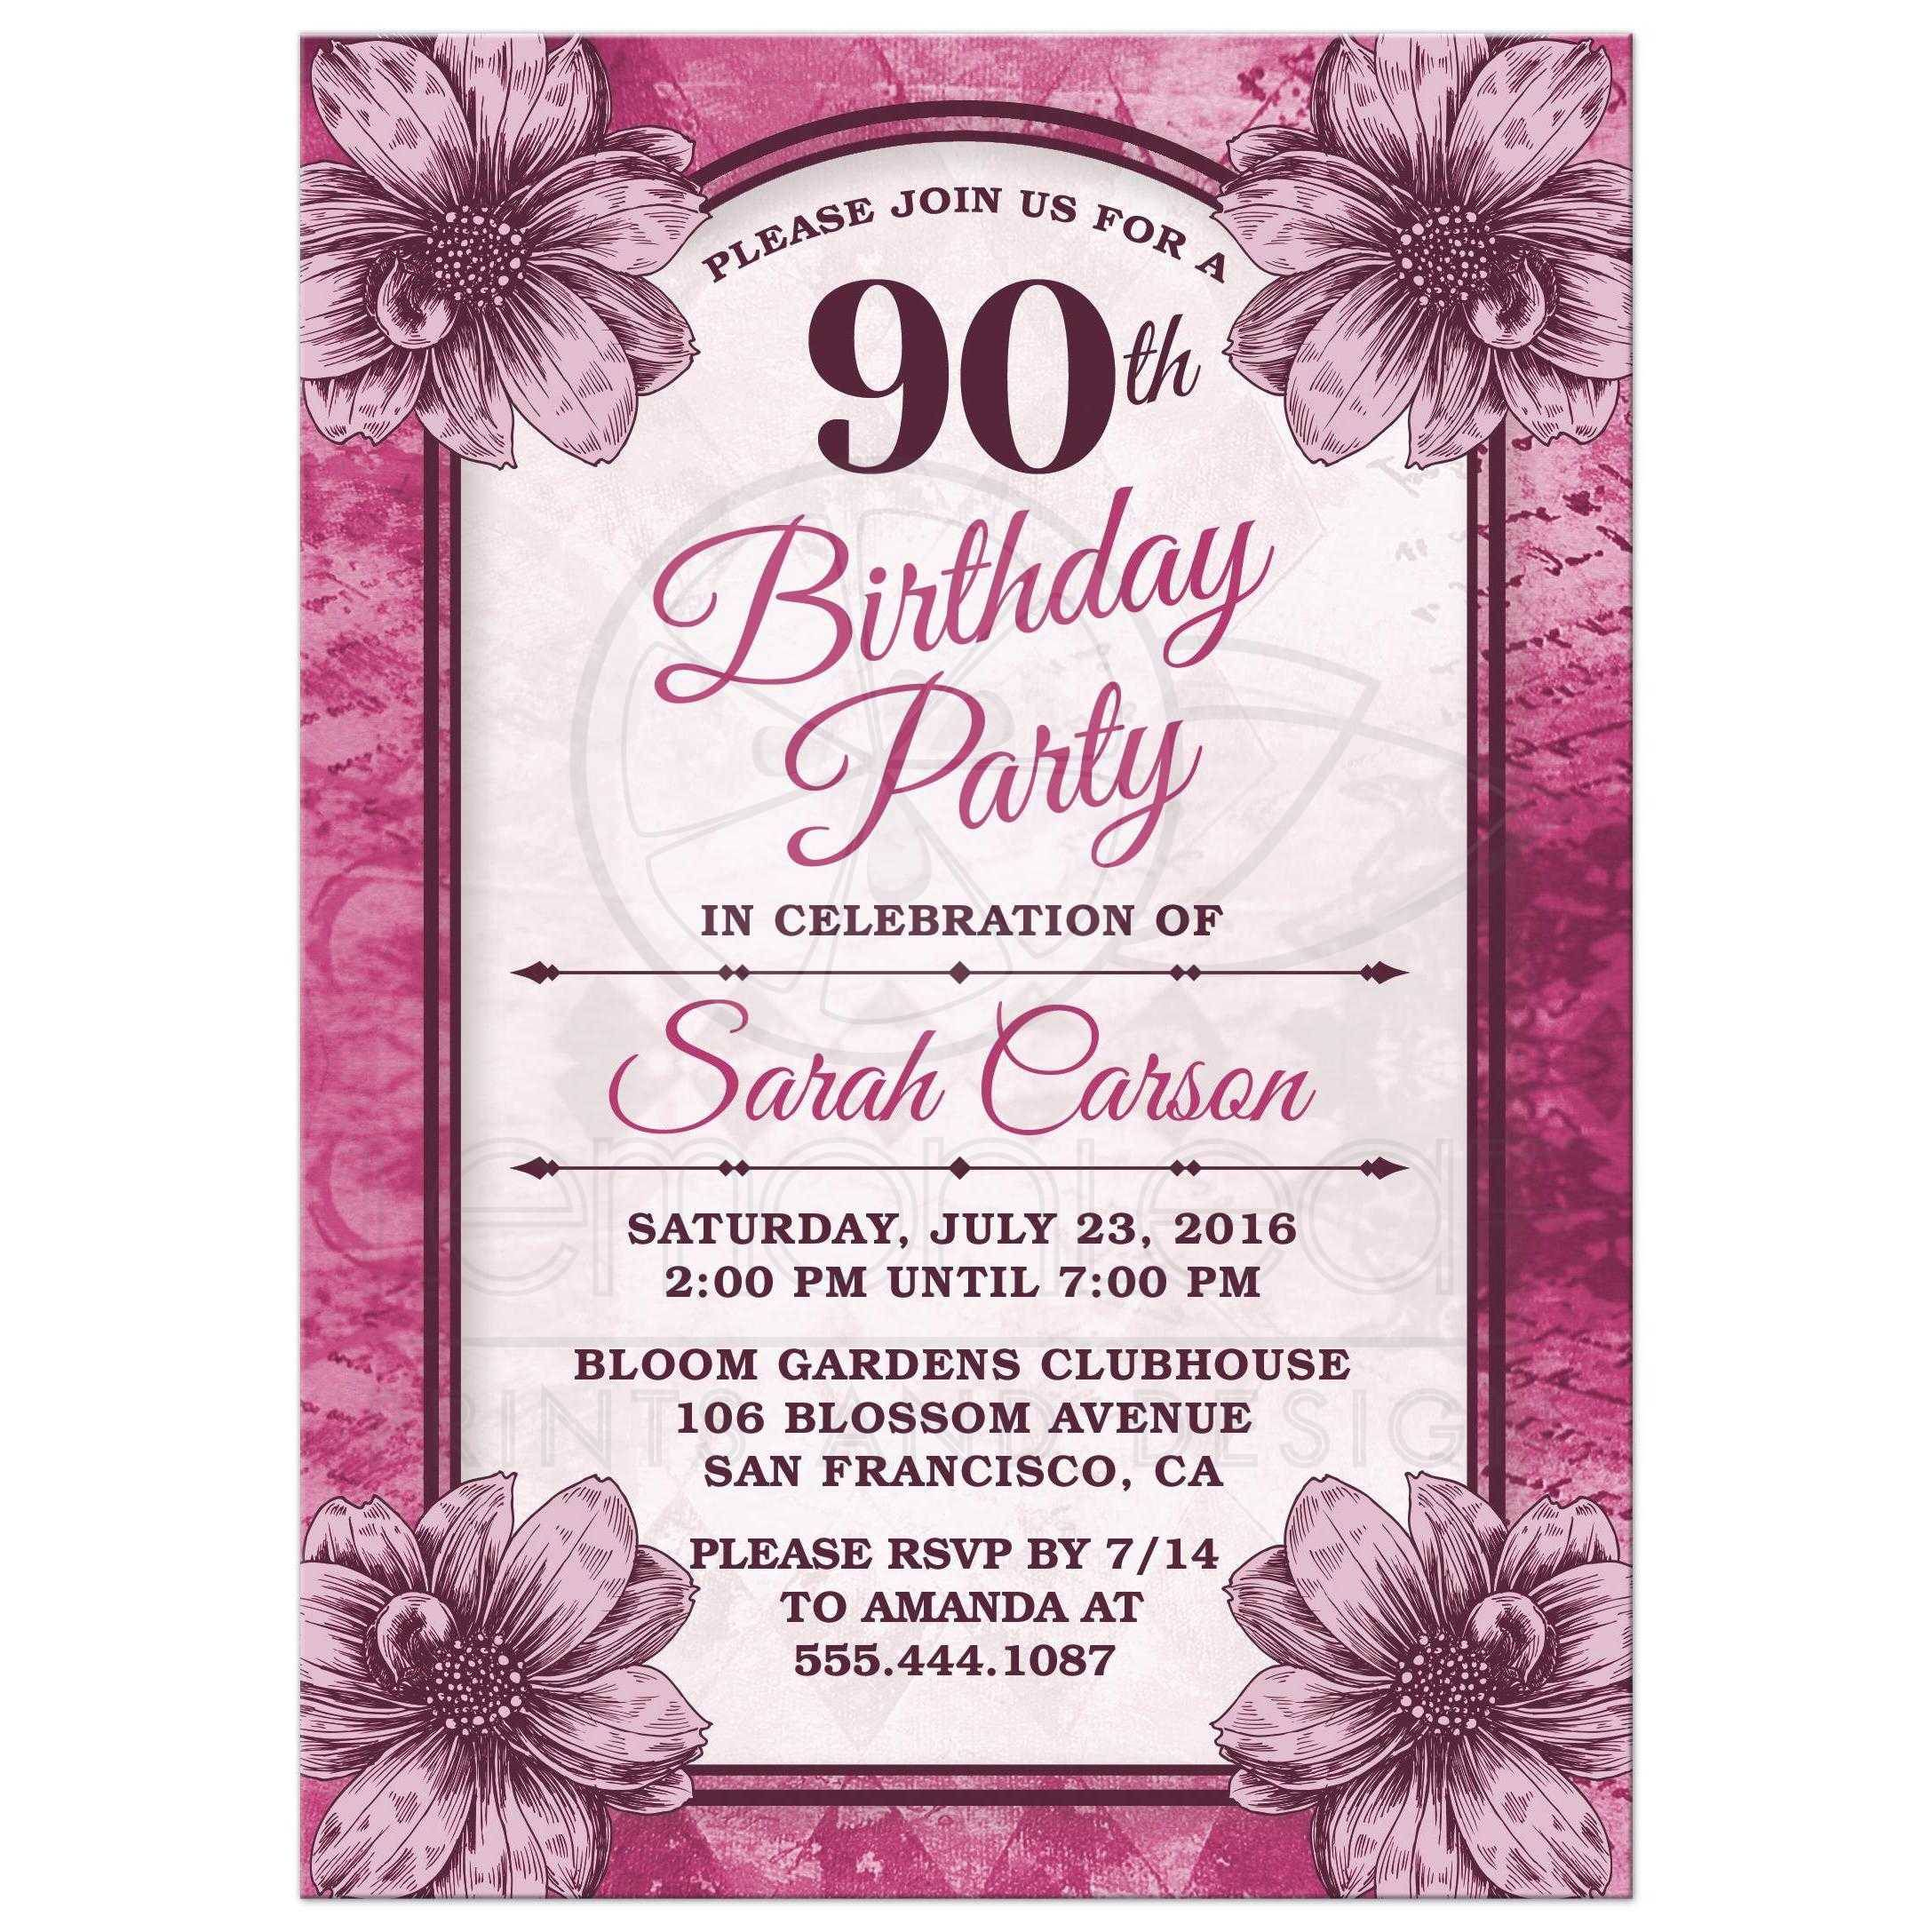 Marvelous 90th Birthday Party Invitations Templates Free  Birthday Invitation Templates Word